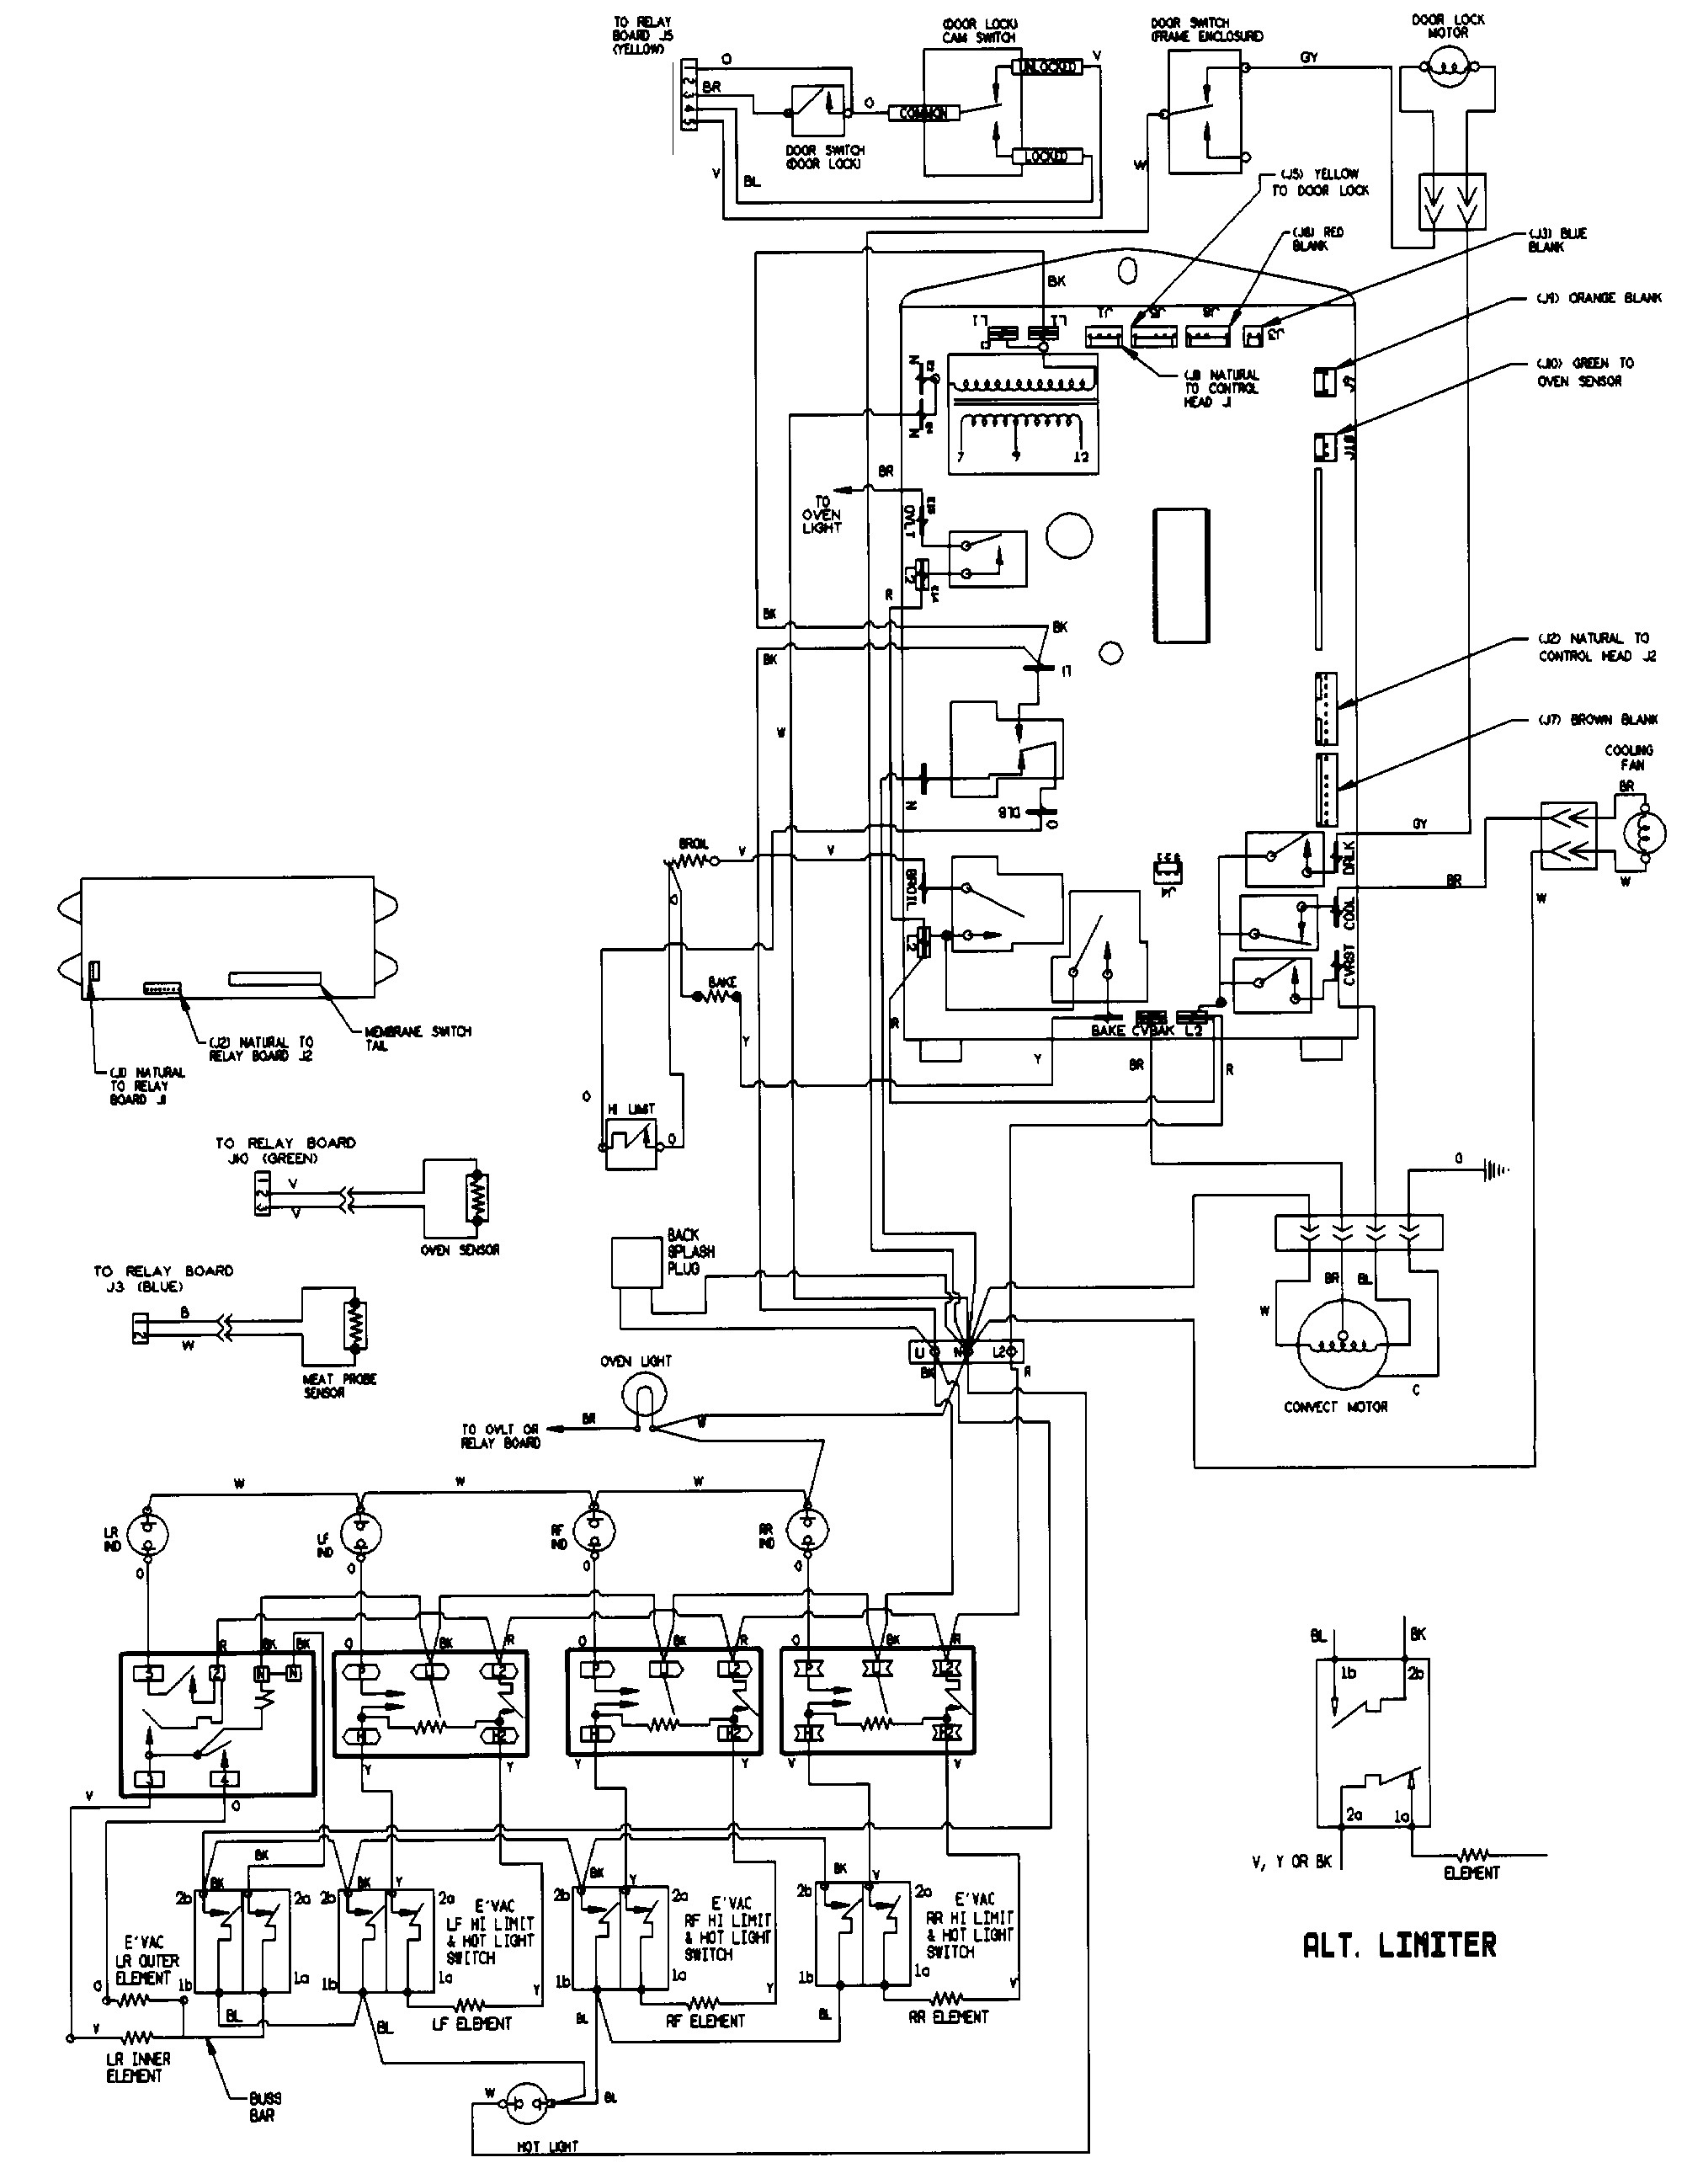 wiring diagram for defrost timer